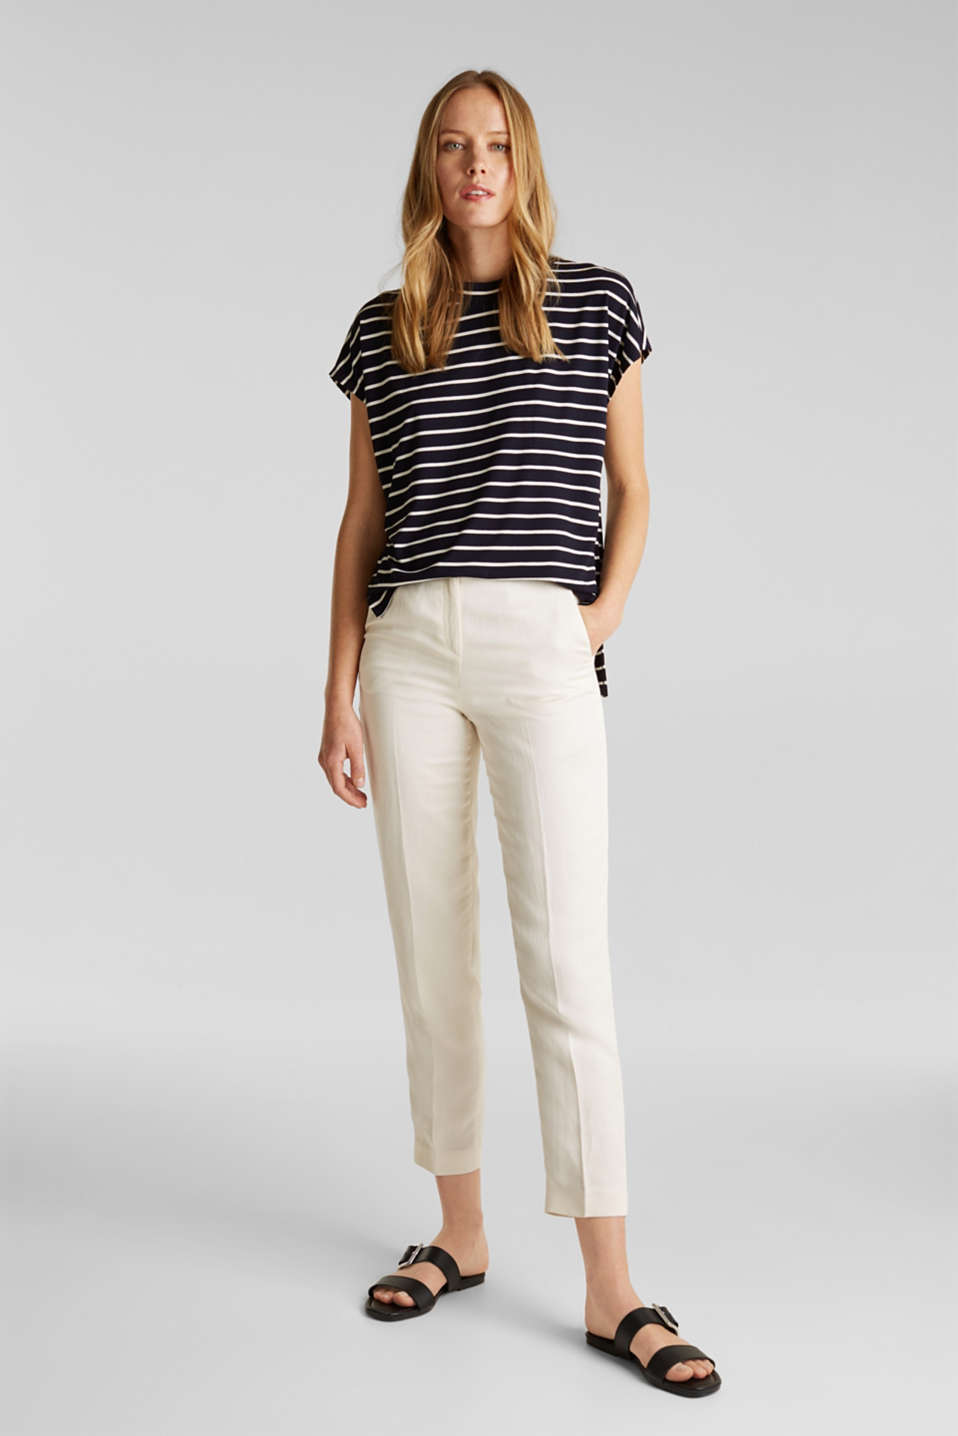 Stretch top with stripes, NAVY, detail image number 6